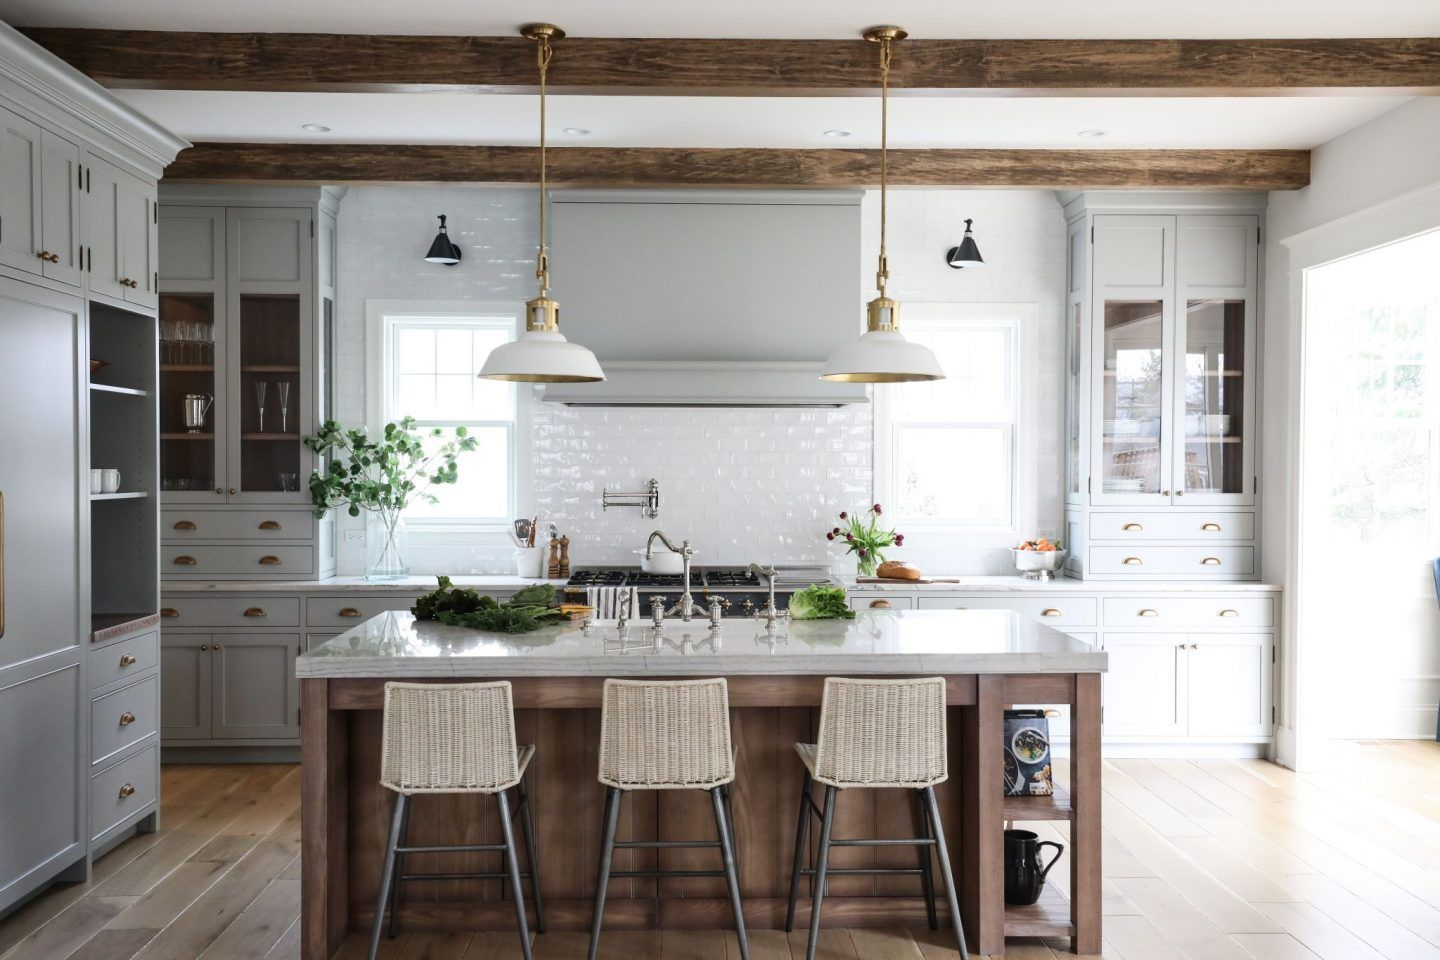 9 Simple Yet Sophisticated Kitchen Design Ideas   Hello Lovely ...